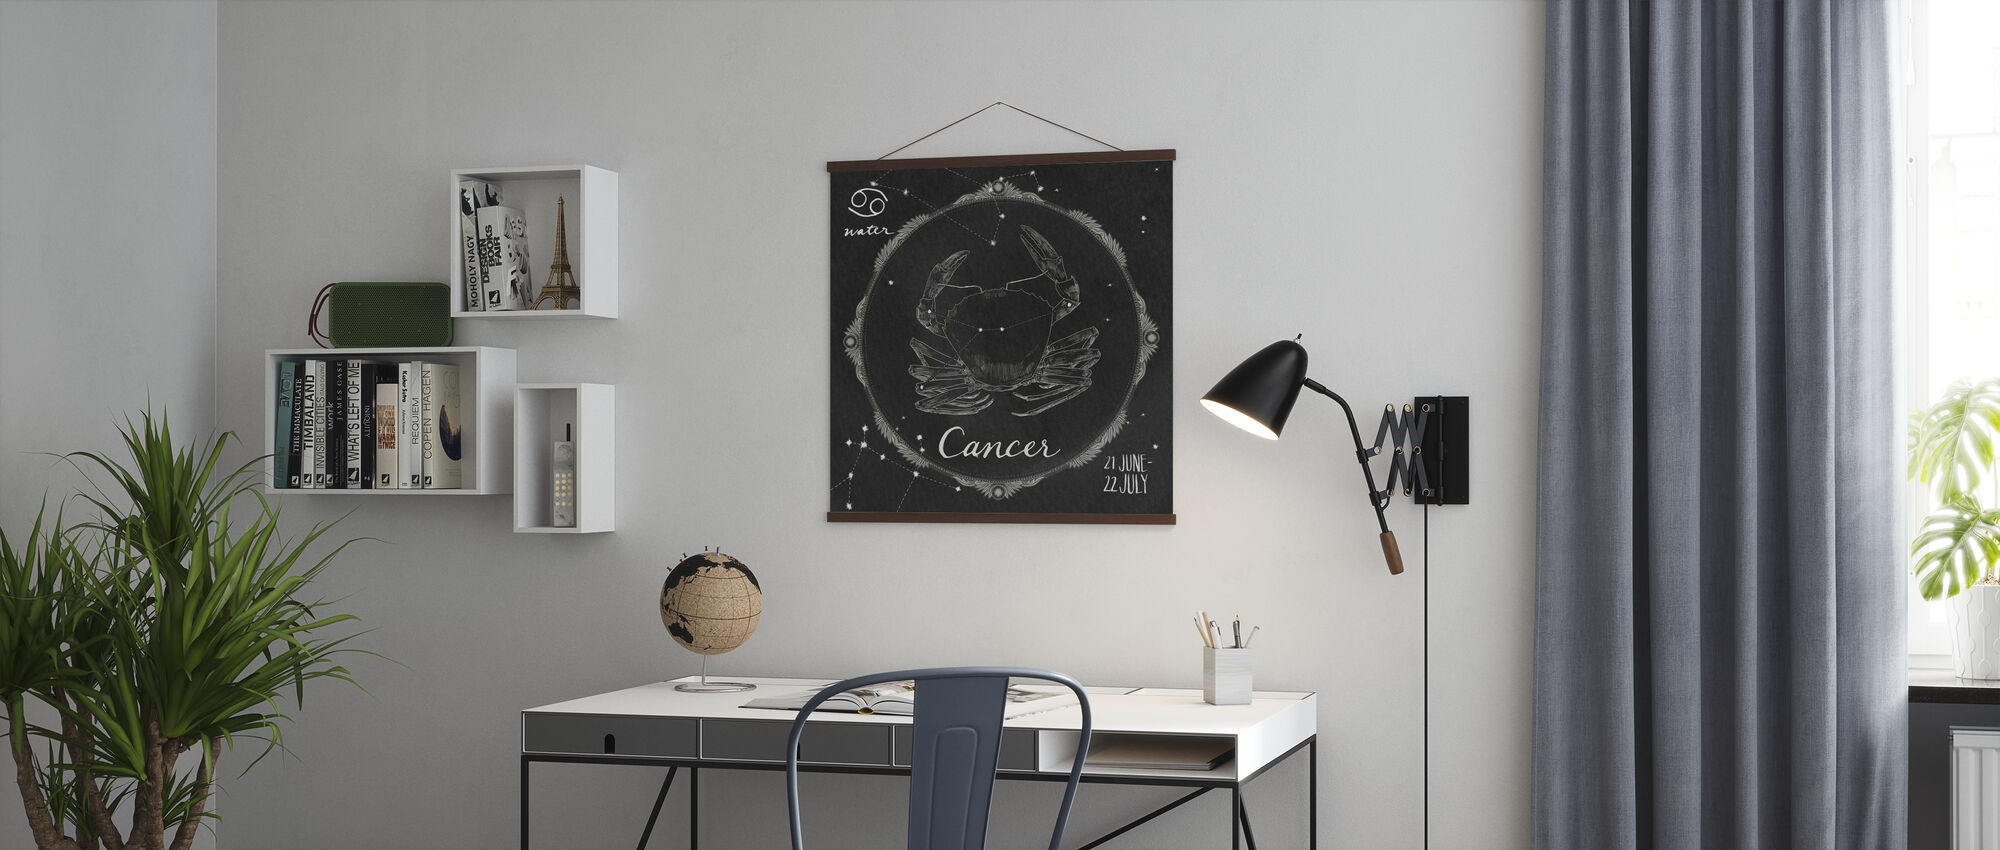 Night Sky Cancer - Poster - Office